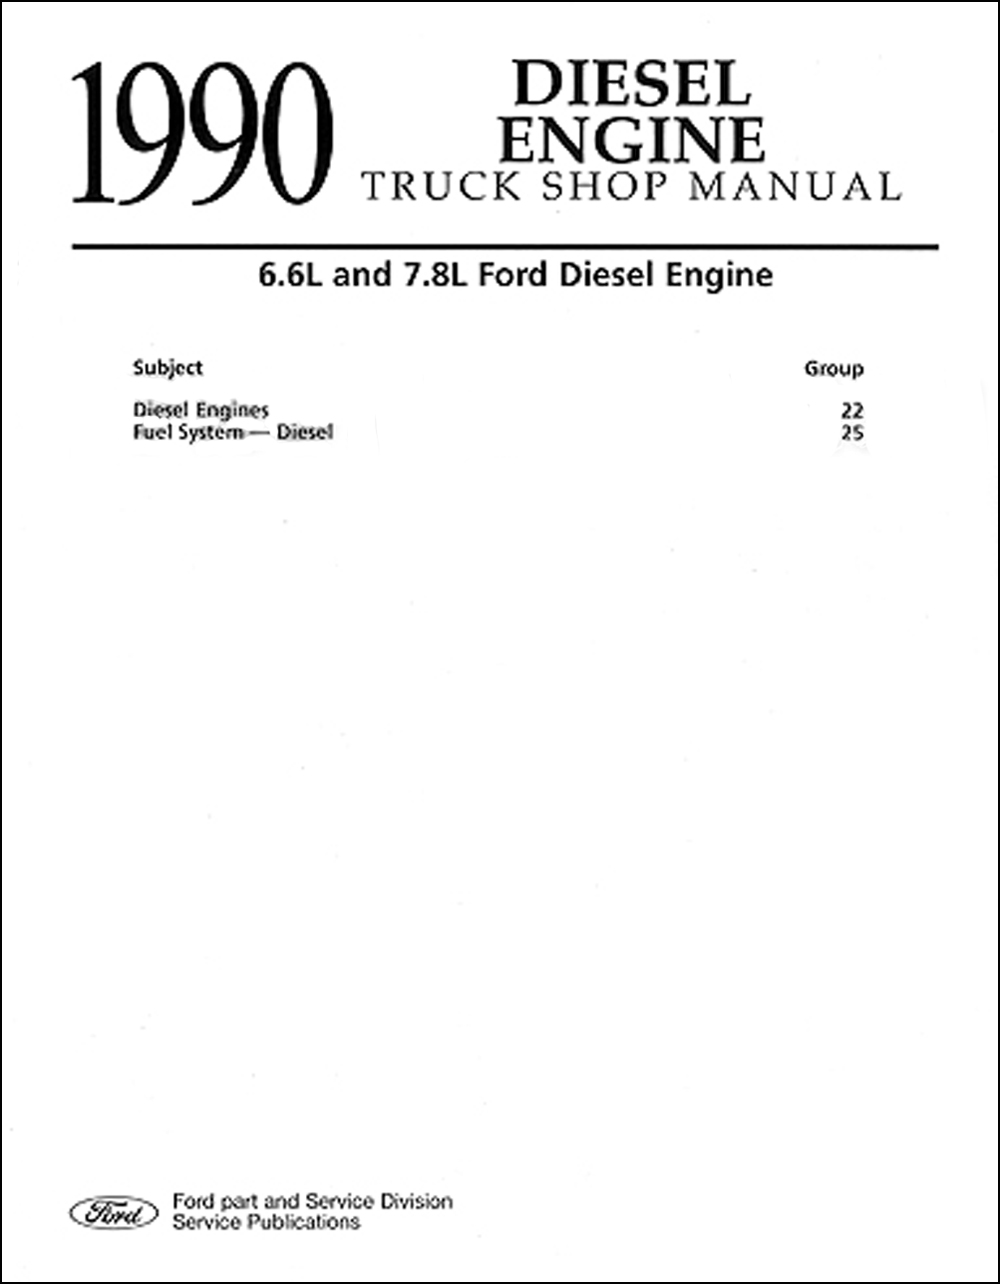 medium resolution of 1990 ford truck 6 6 and 7 8 diesel engine repair shop manual 259 00